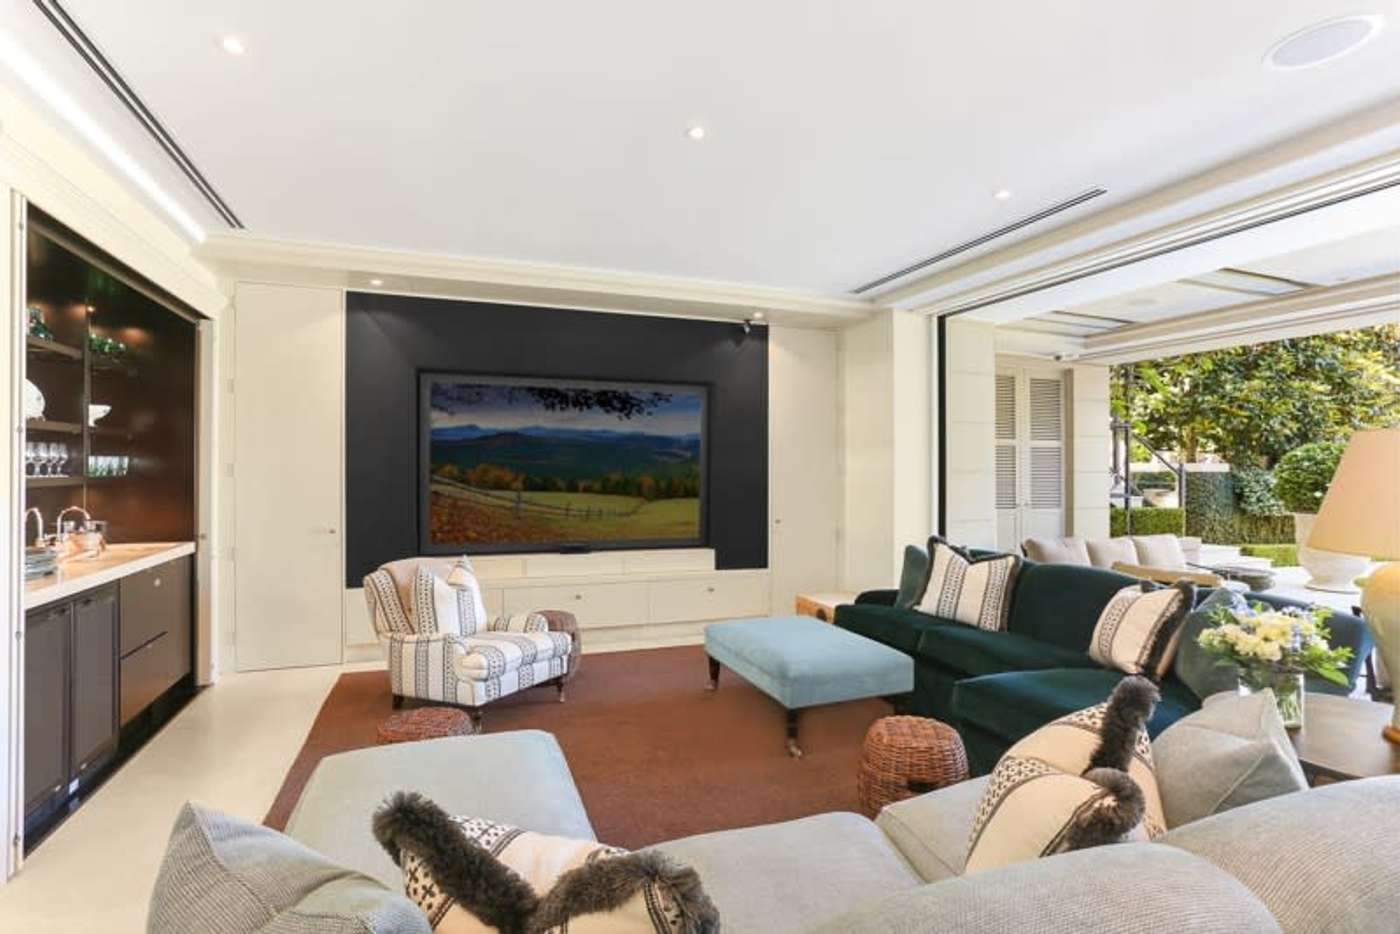 Seventh view of Homely house listing, 9 Black Street, Vaucluse NSW 2030